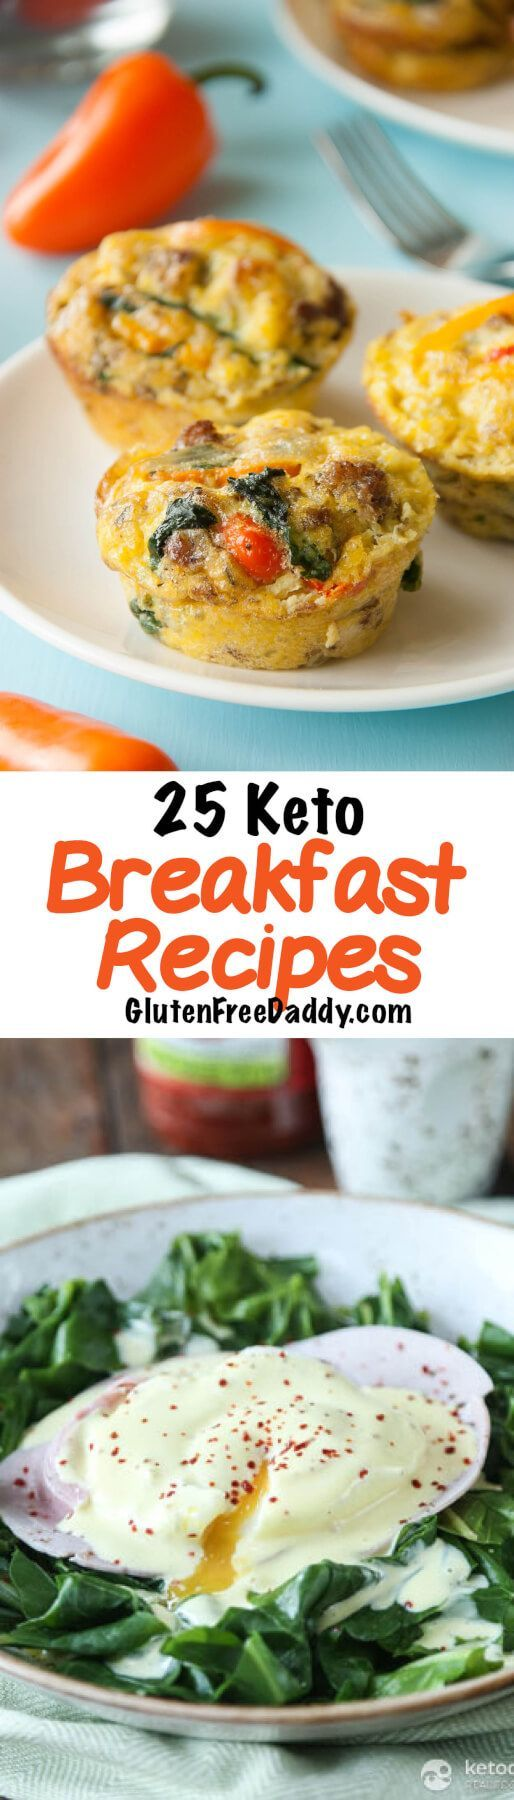 - These are 25 of the best ever Keto breakfast recipes to help you start your day off right. Your breakfast could be so delicious with these recipes.